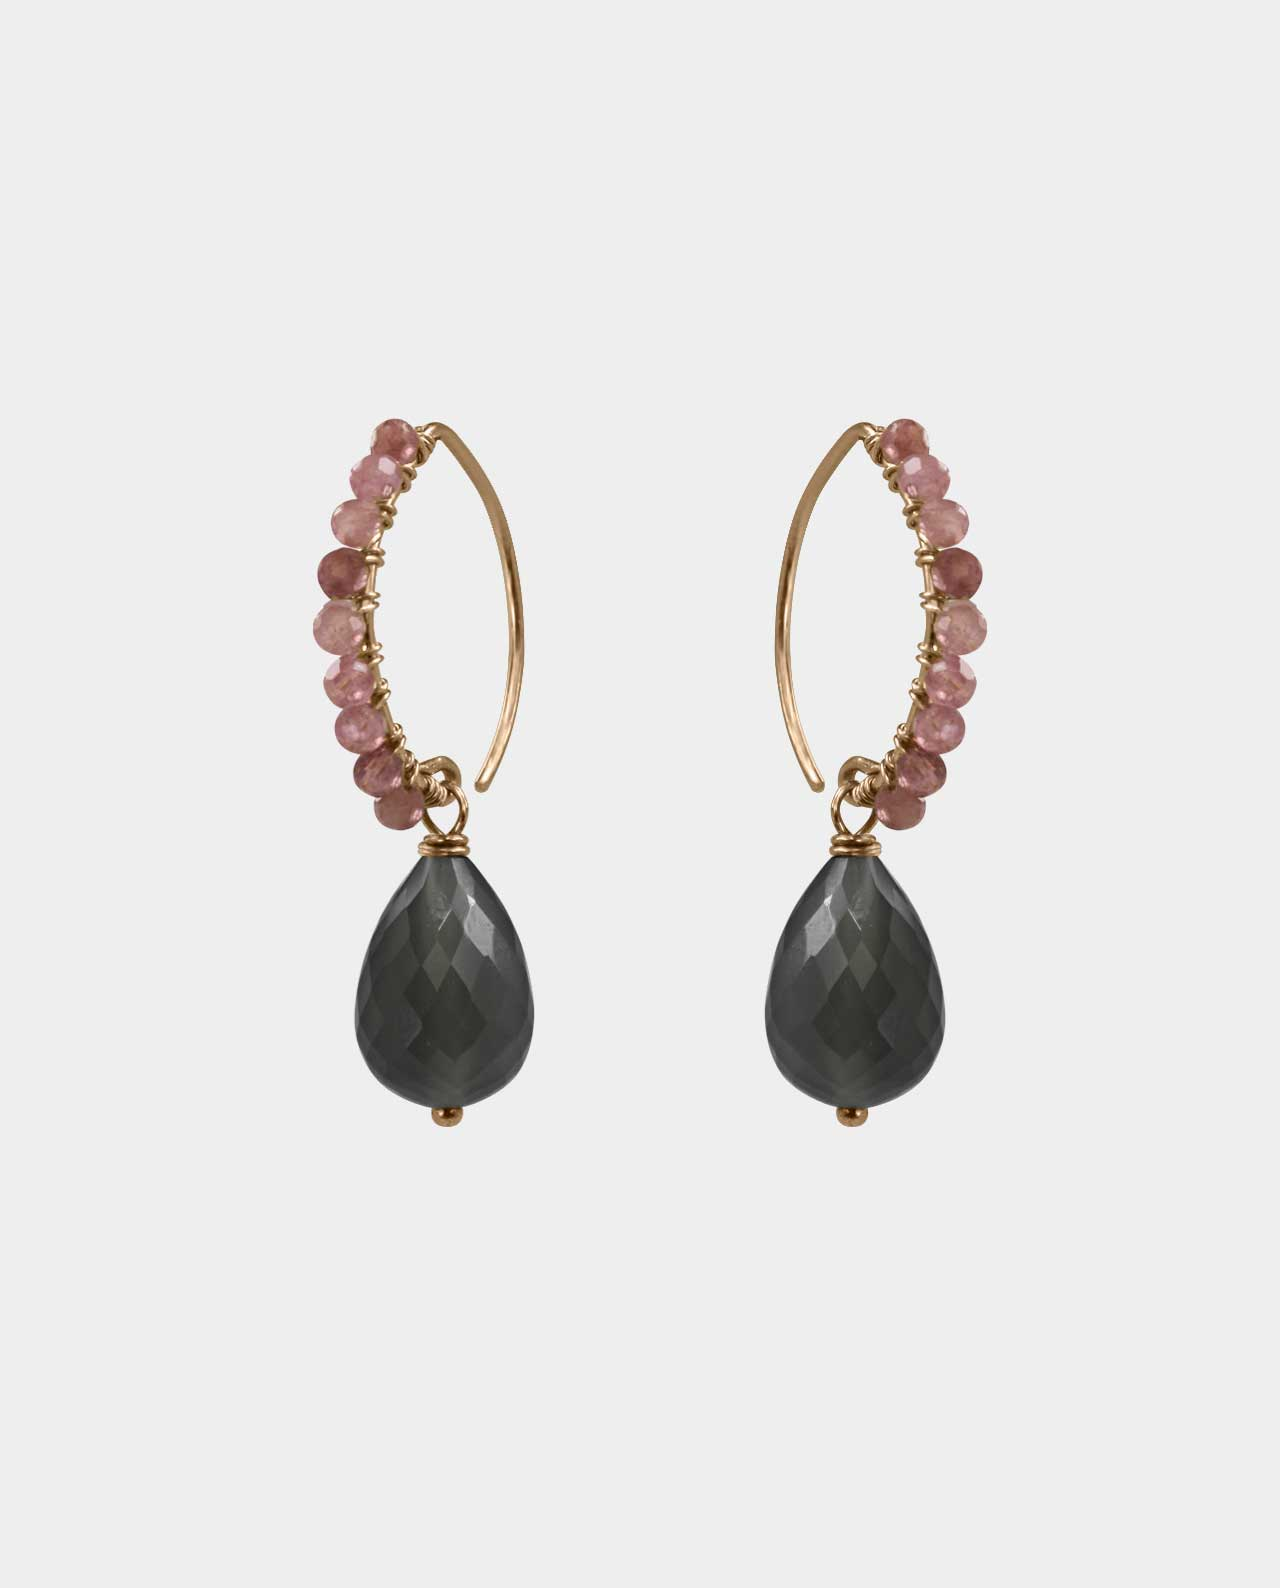 Earrings with grey moonstones and pink opals with a modern Scandinavian twist with an added element of glamour and a piece of jewelry that is on many girlfriends' wish list with real gold jewelry